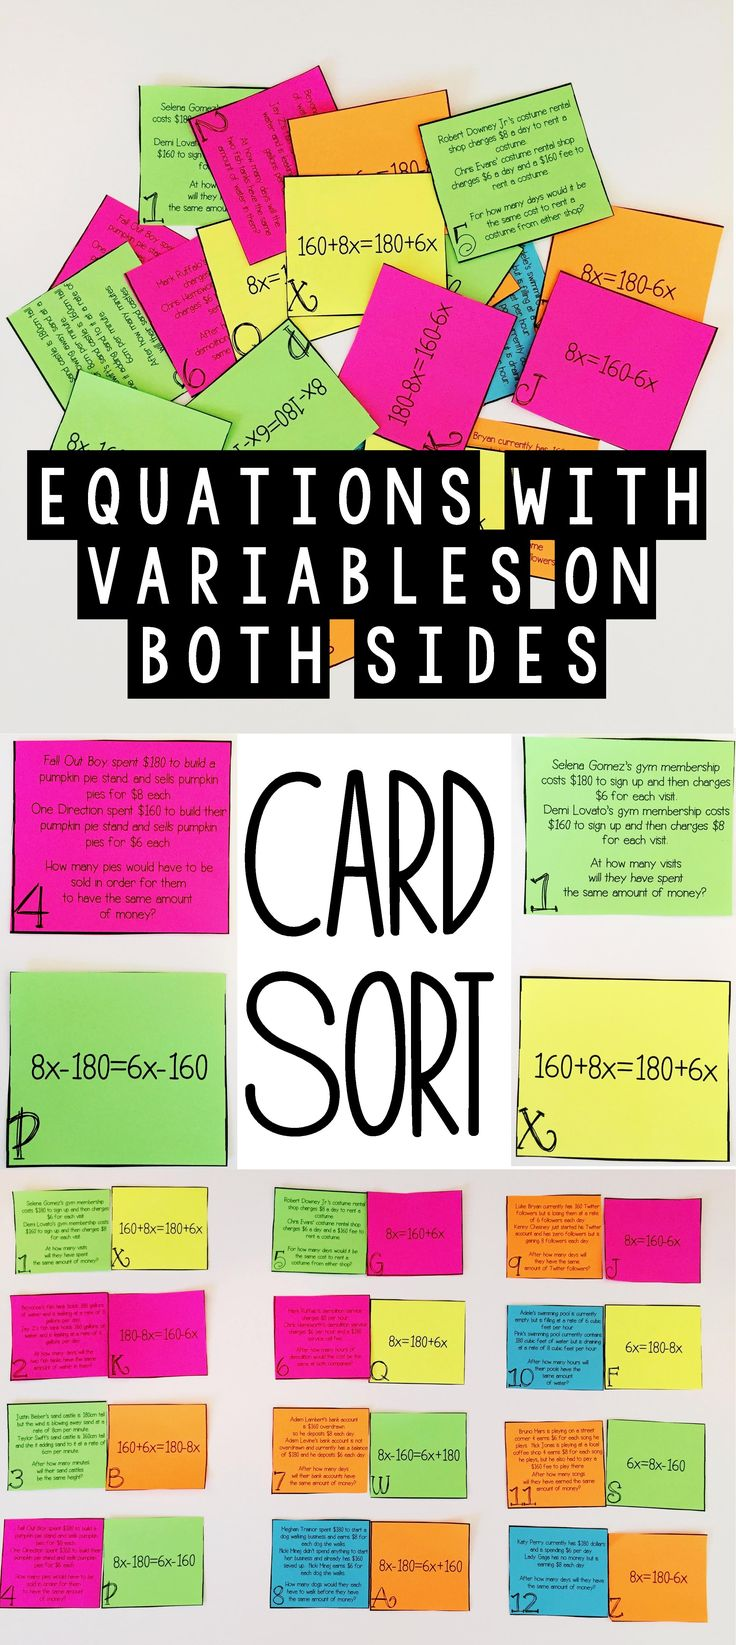 My 8th grade math students loved this hands activity card sort.  This was the perfect way to practice working with word problems involving equations with variables on both sides.  It seems like this type of activity shows up every year on STAAR.  I will definitely be using this activity instead of a worksheet for test prep this year.